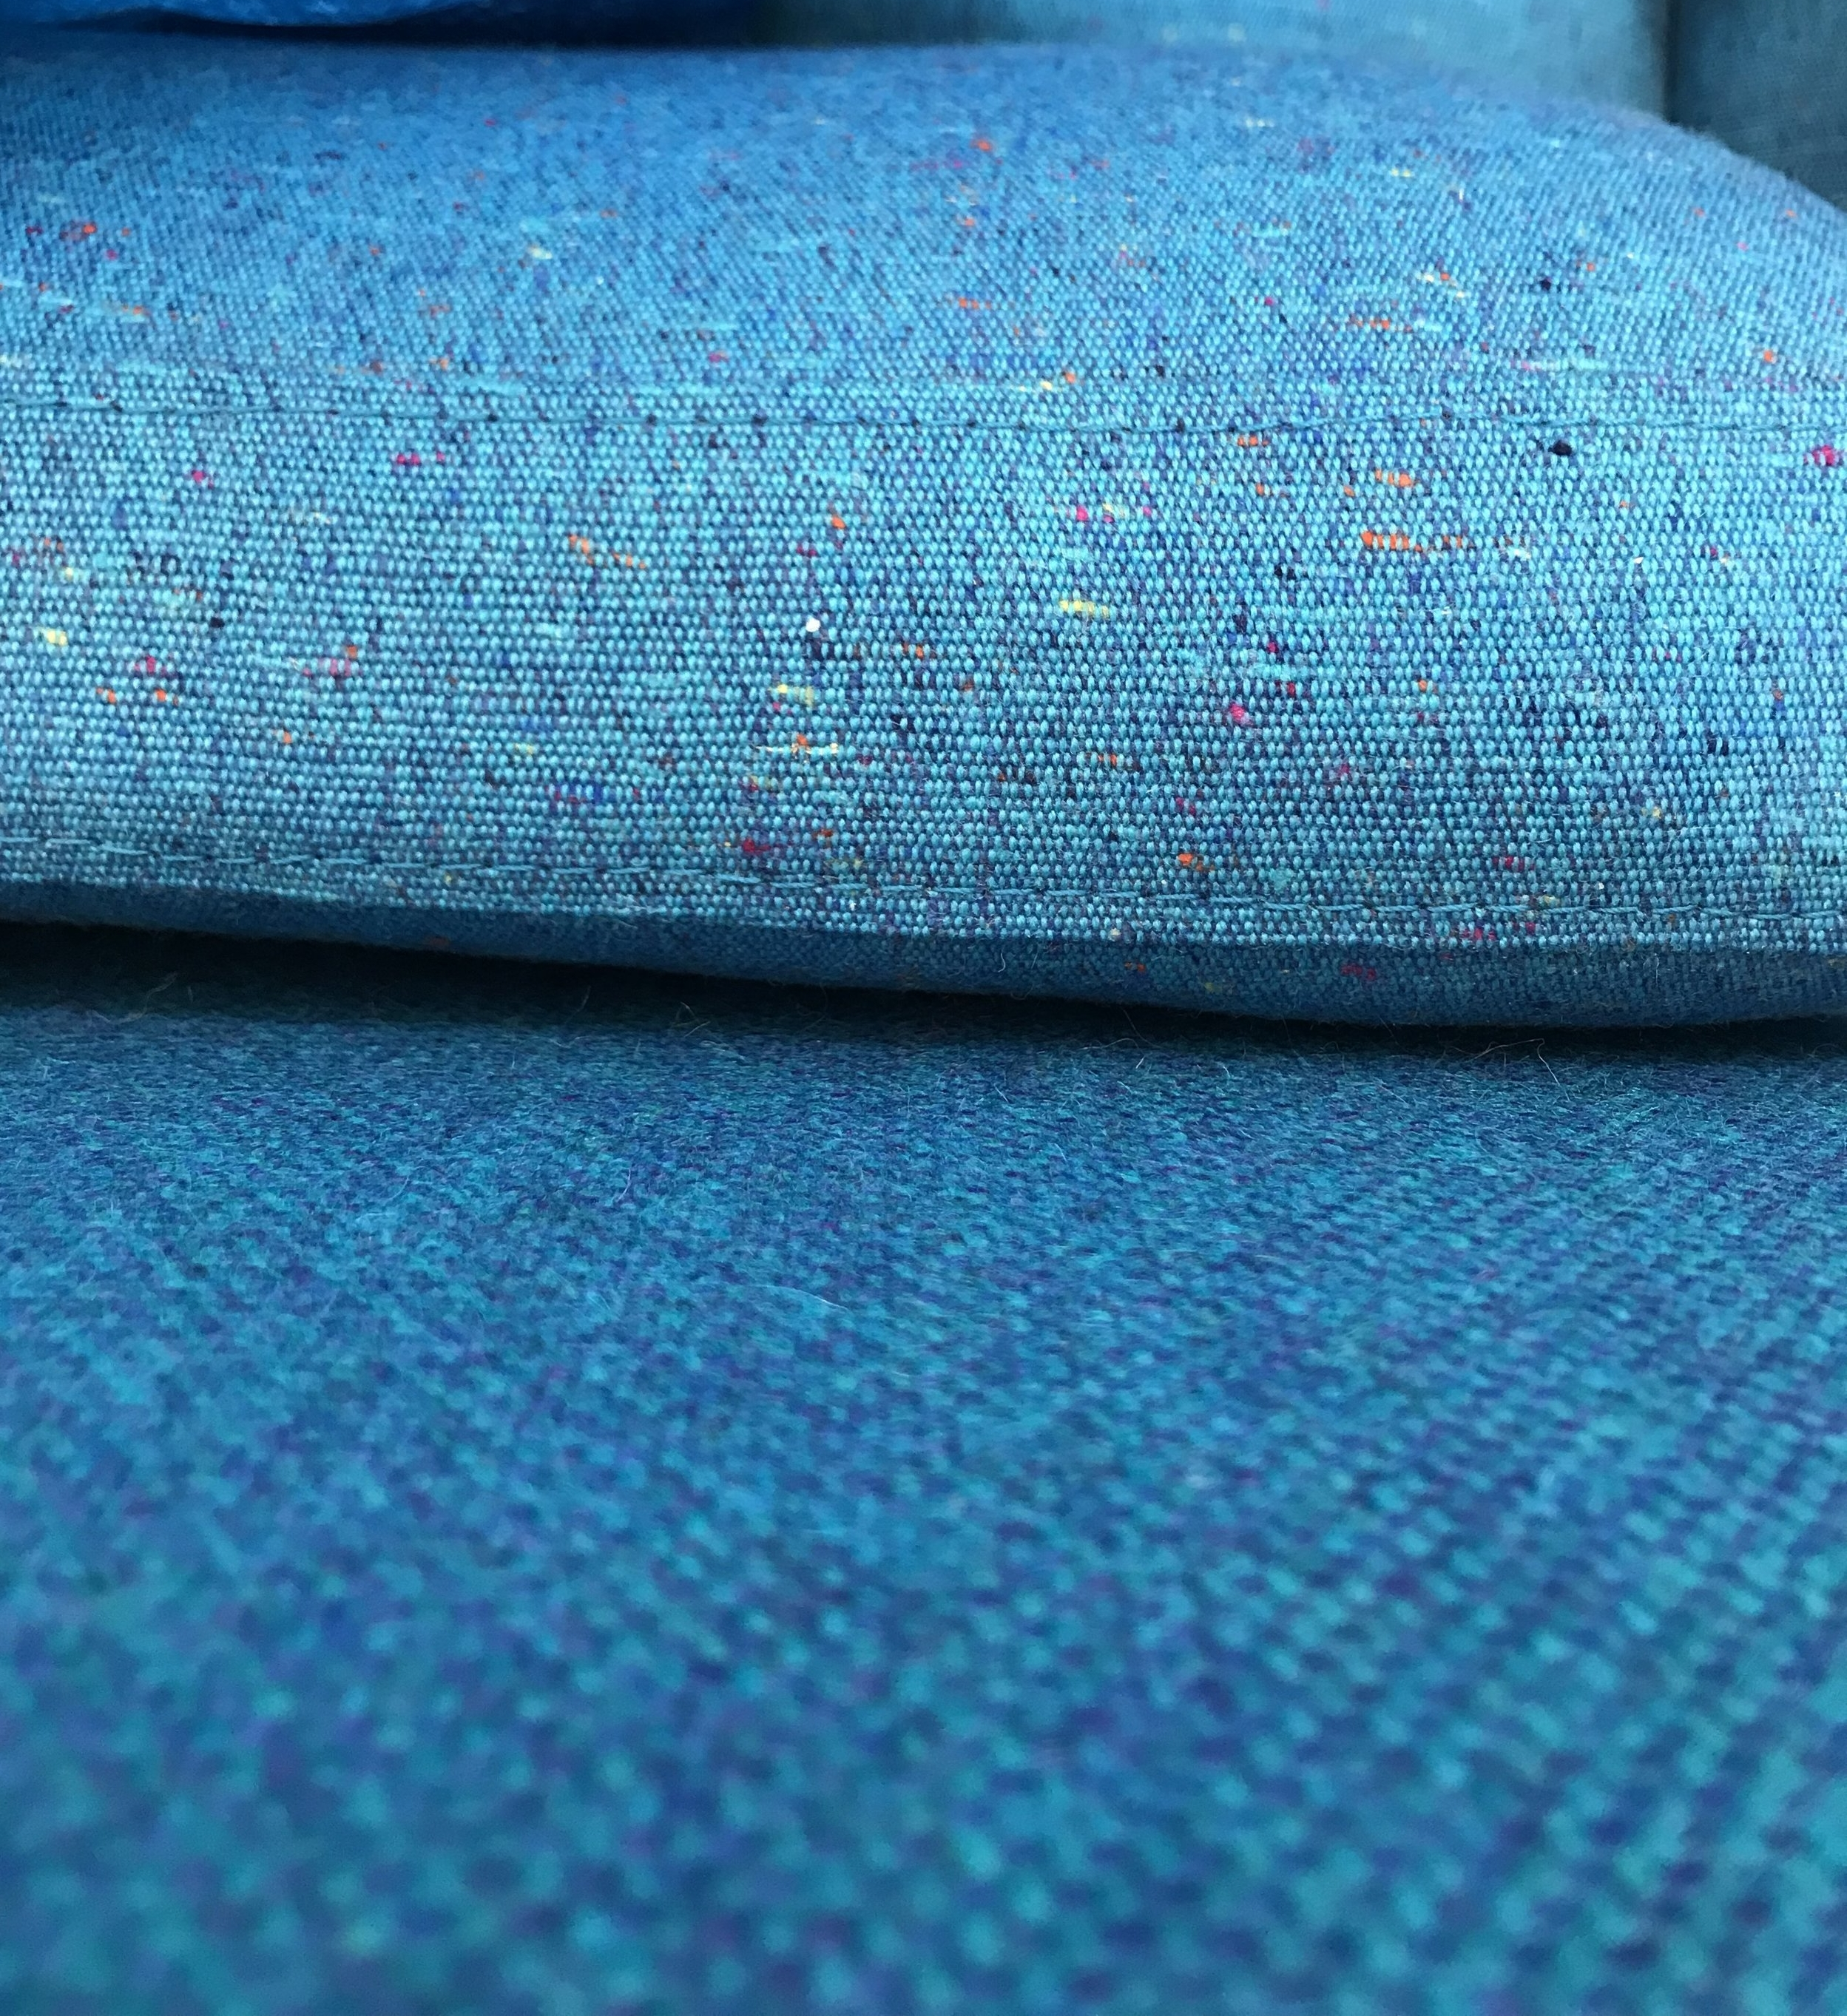 Bute Fabric - Follow our journey visiting one of Scotland's cutting edge design mills